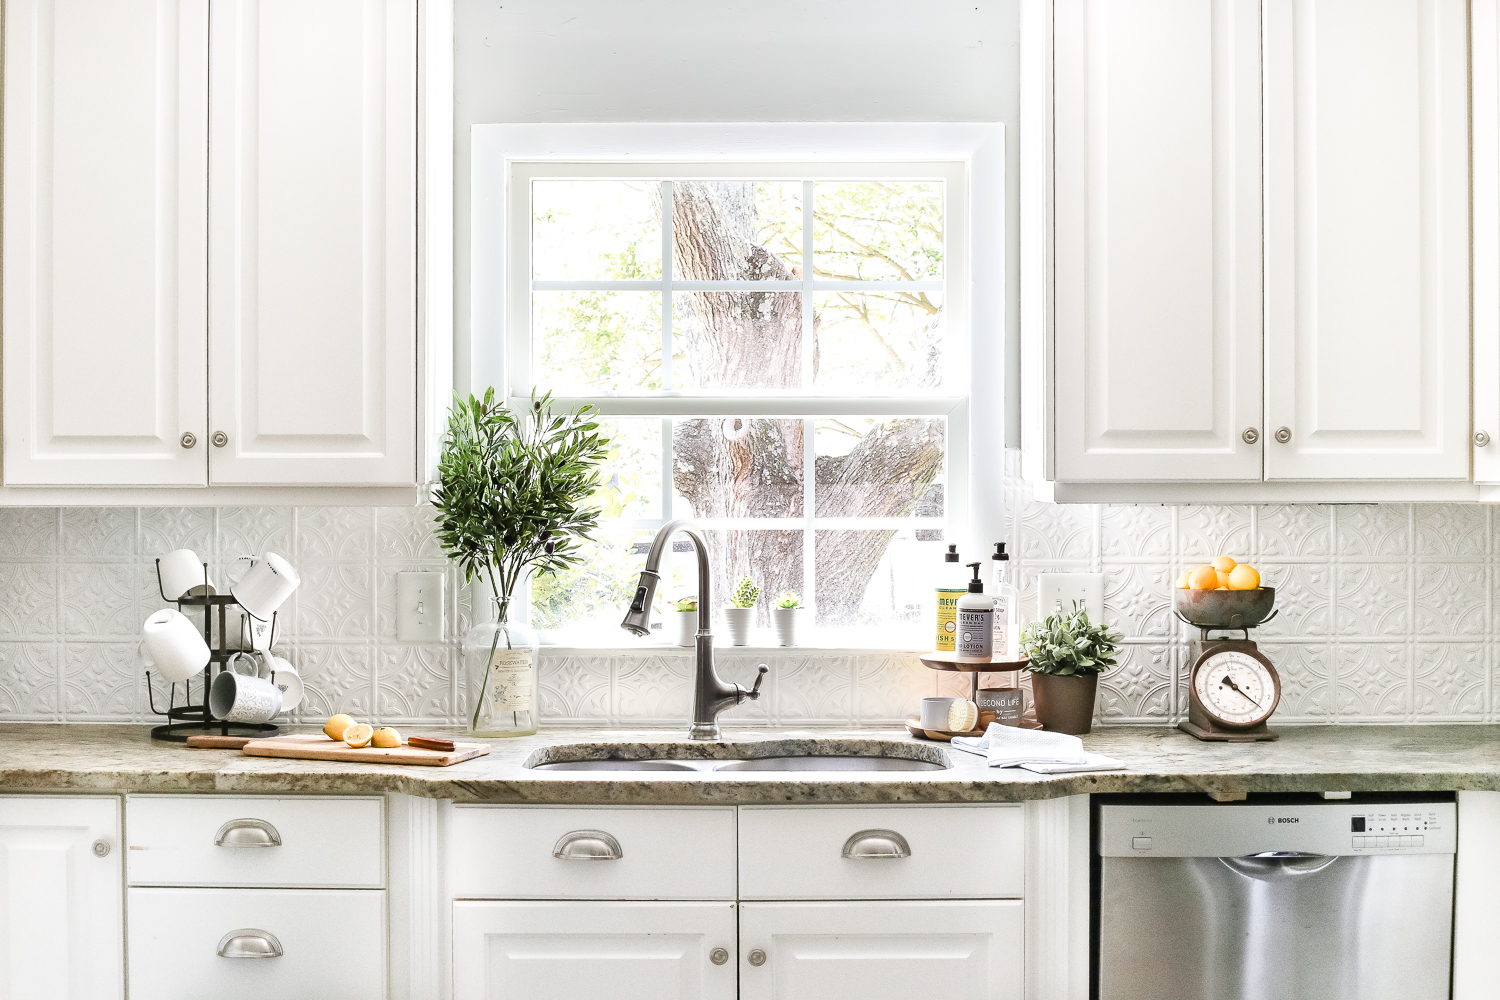 Fabulous Diy Pressed Tin Kitchen Backsplash - Bless'er House intended for Beautiful Kitchen Without Backsplash